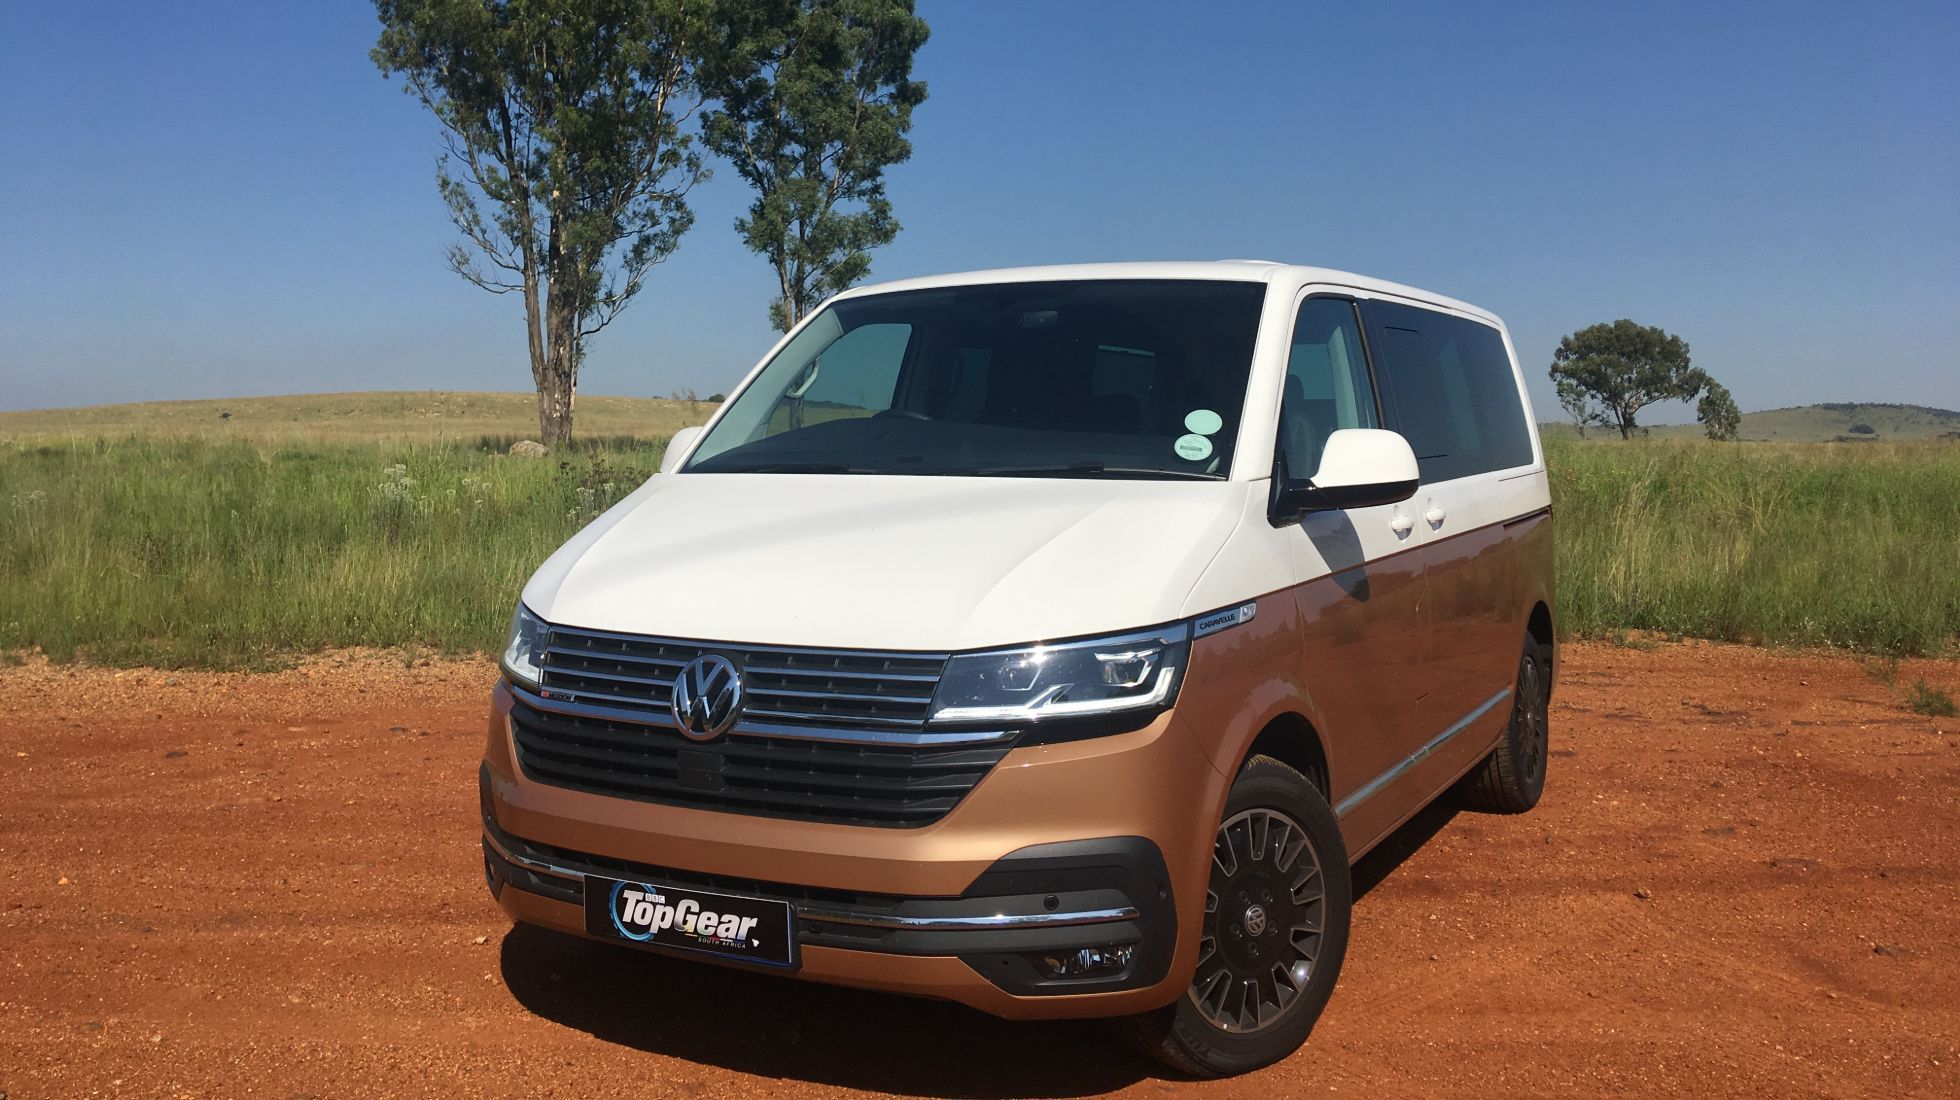 Spruced up VW Caravelle makes a compelling case